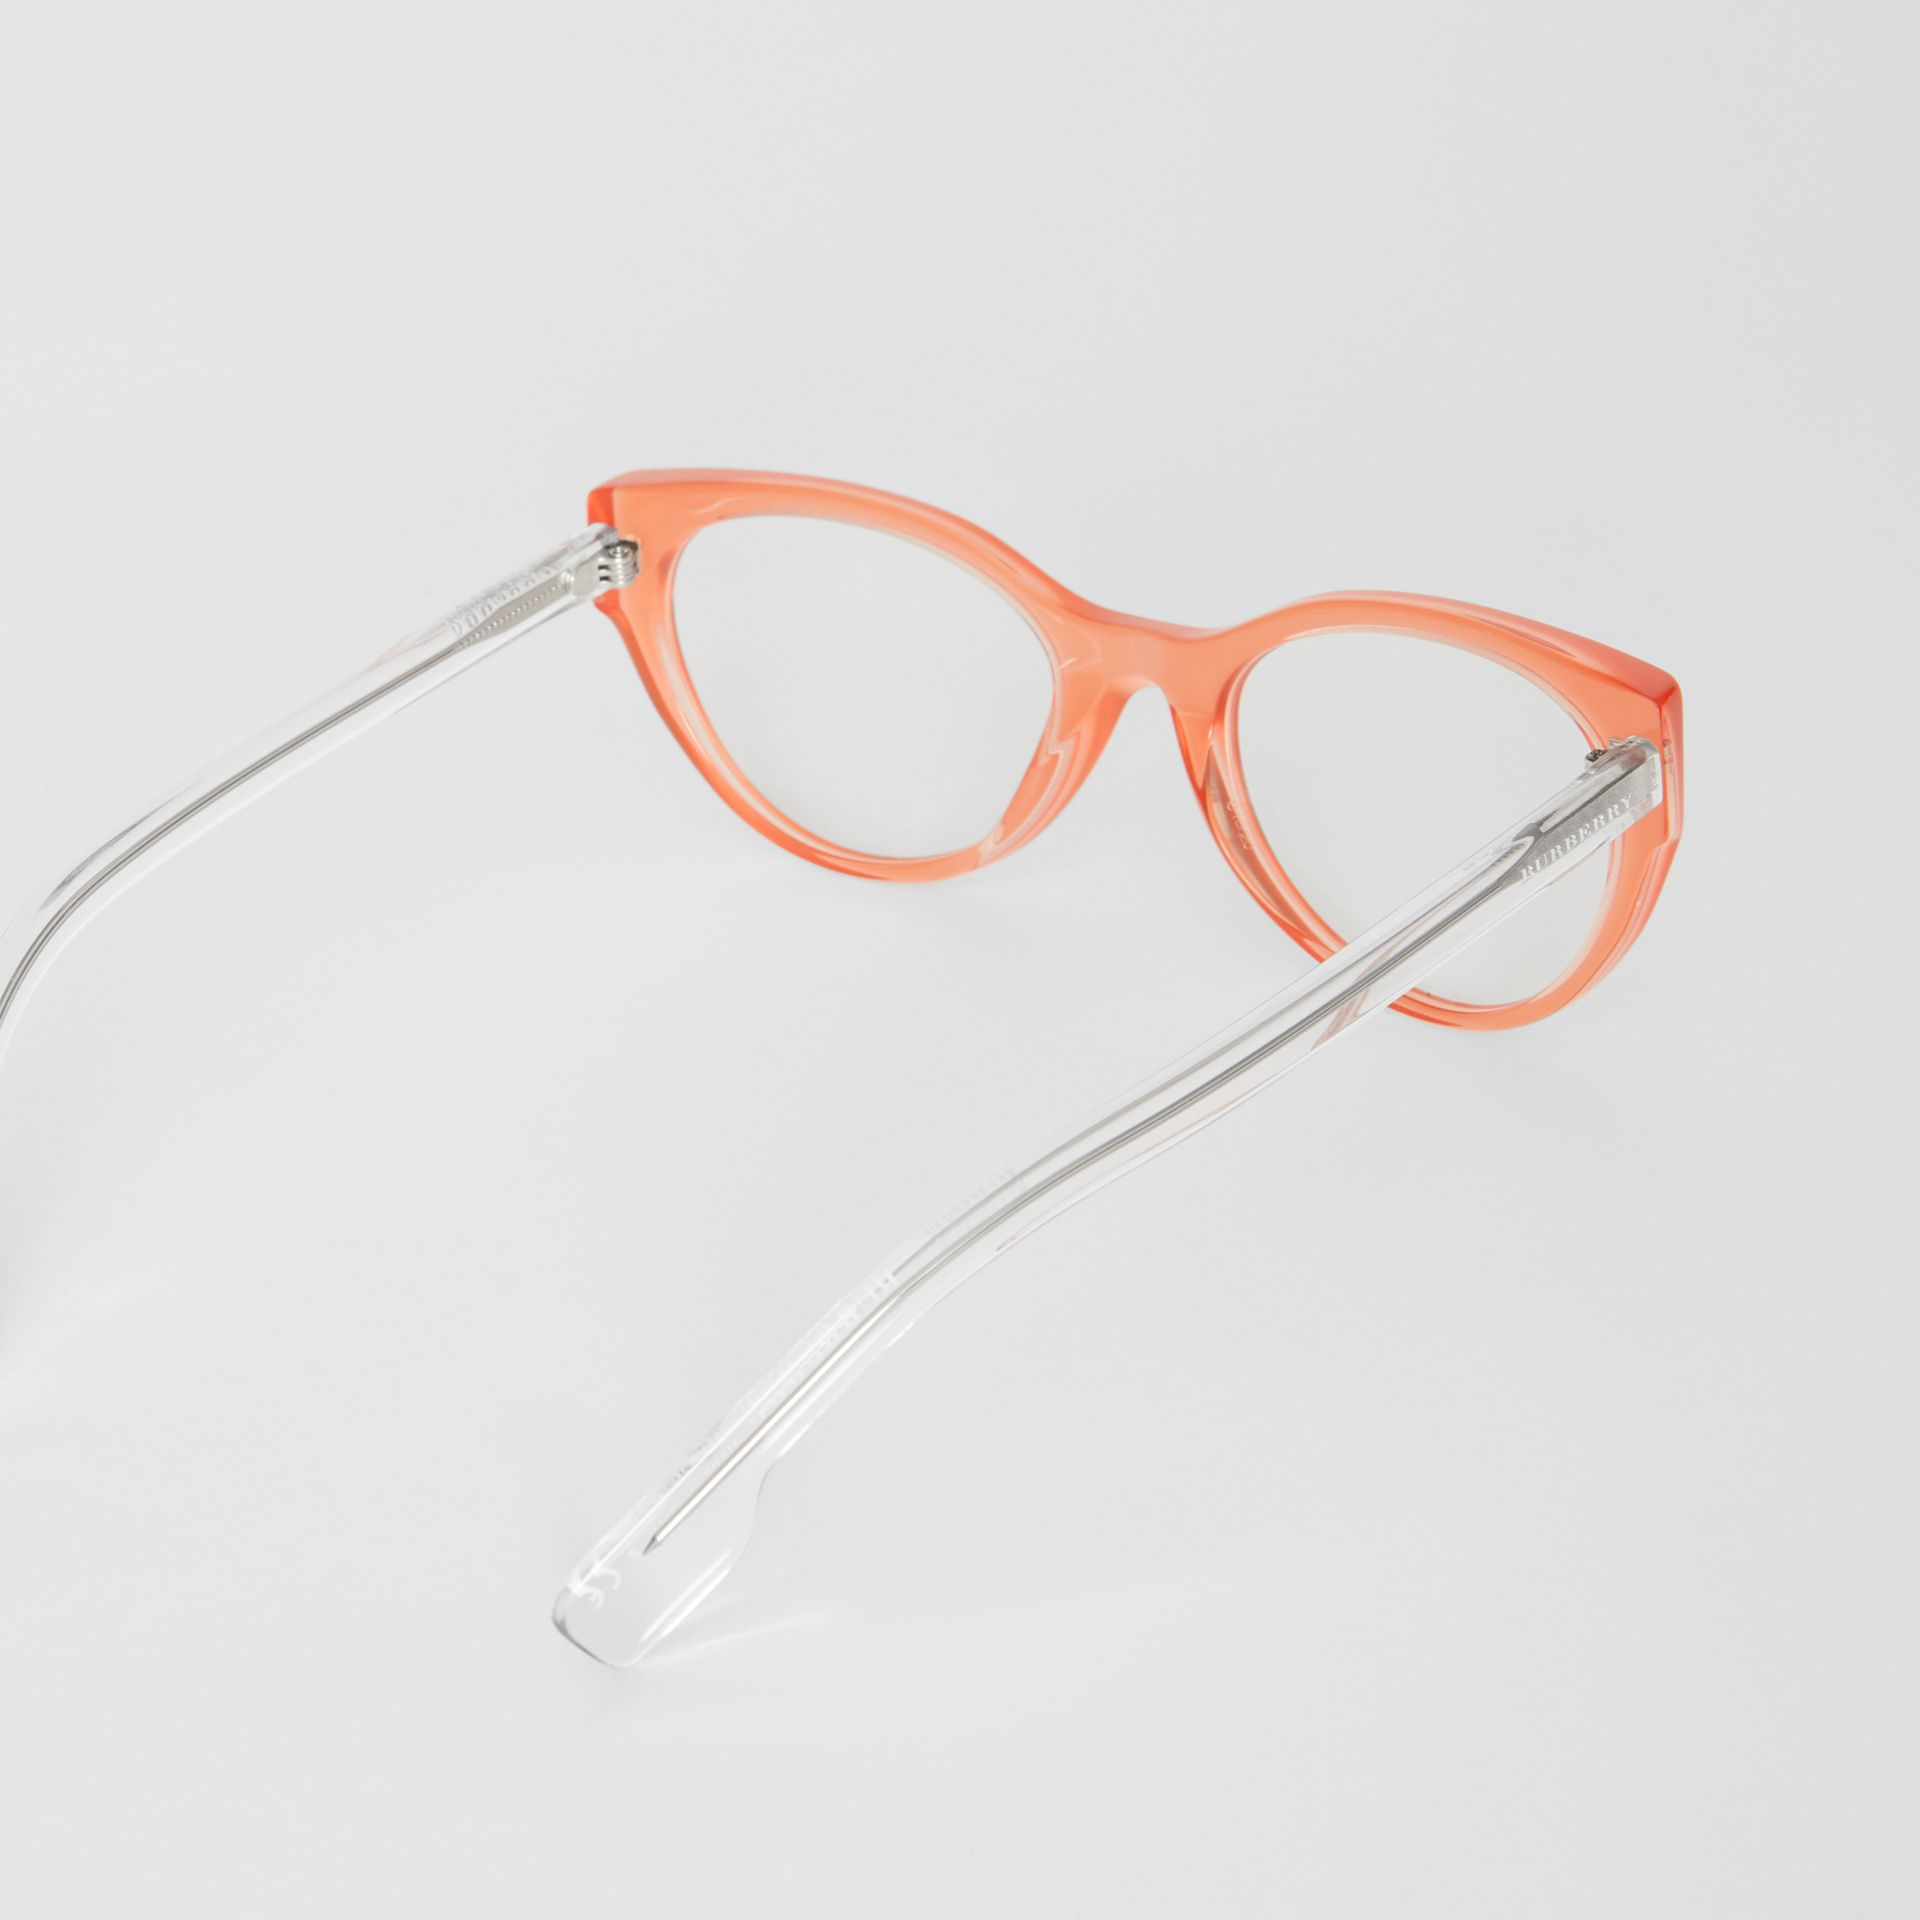 Cat-eye Optical Frames in Peach - Women | Burberry United Kingdom - gallery image 4